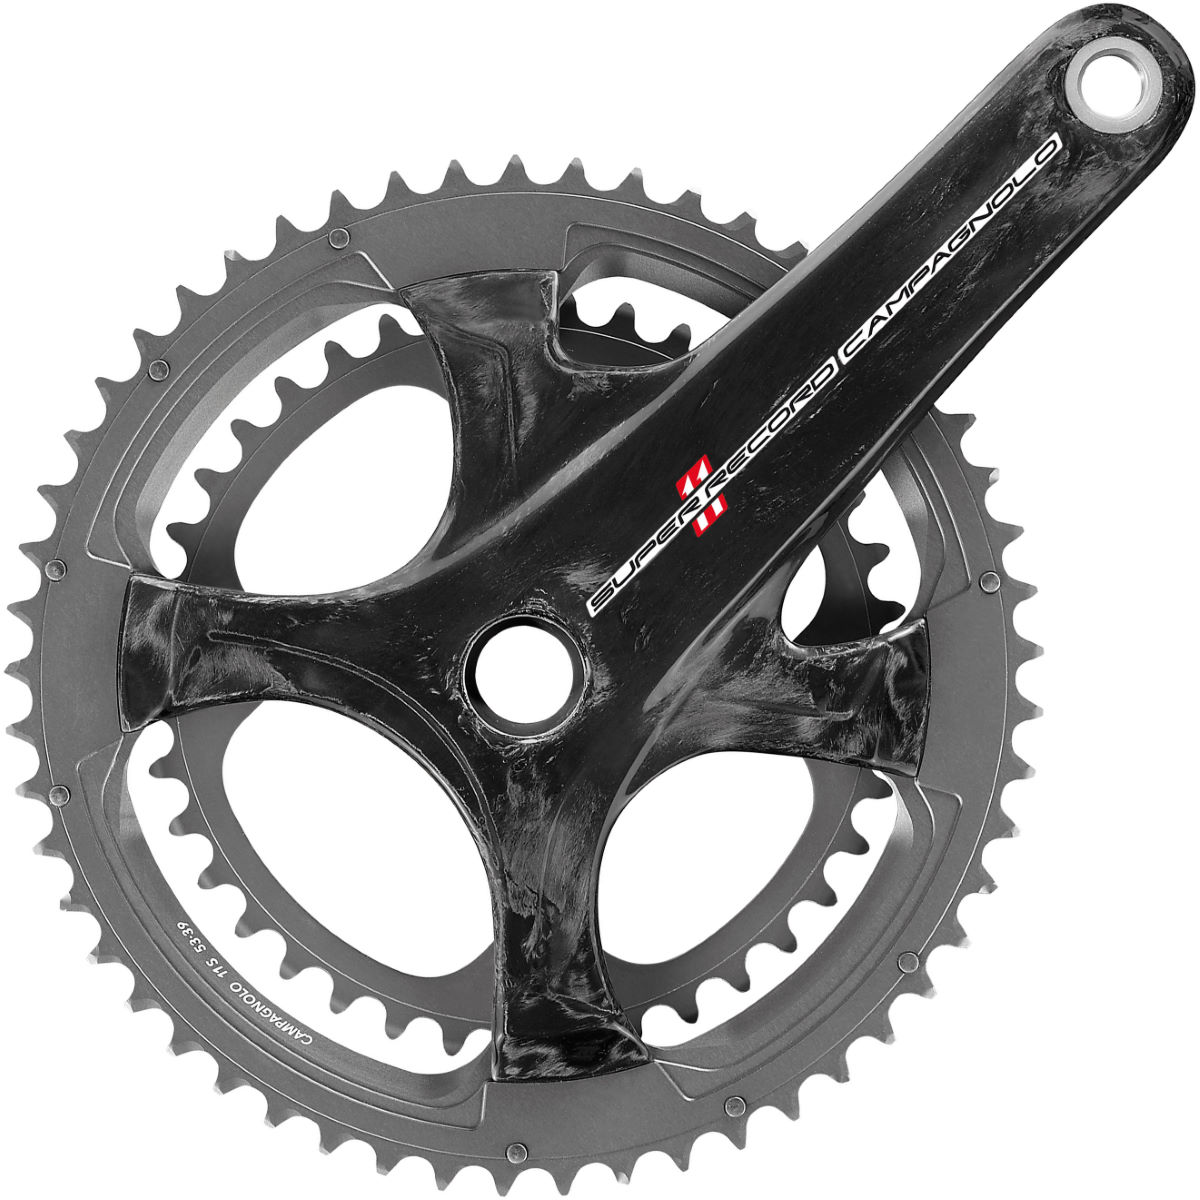 Campagnolo Campagnolo Super Record Ultra Torque 11 Speed Chainset   Chainsets